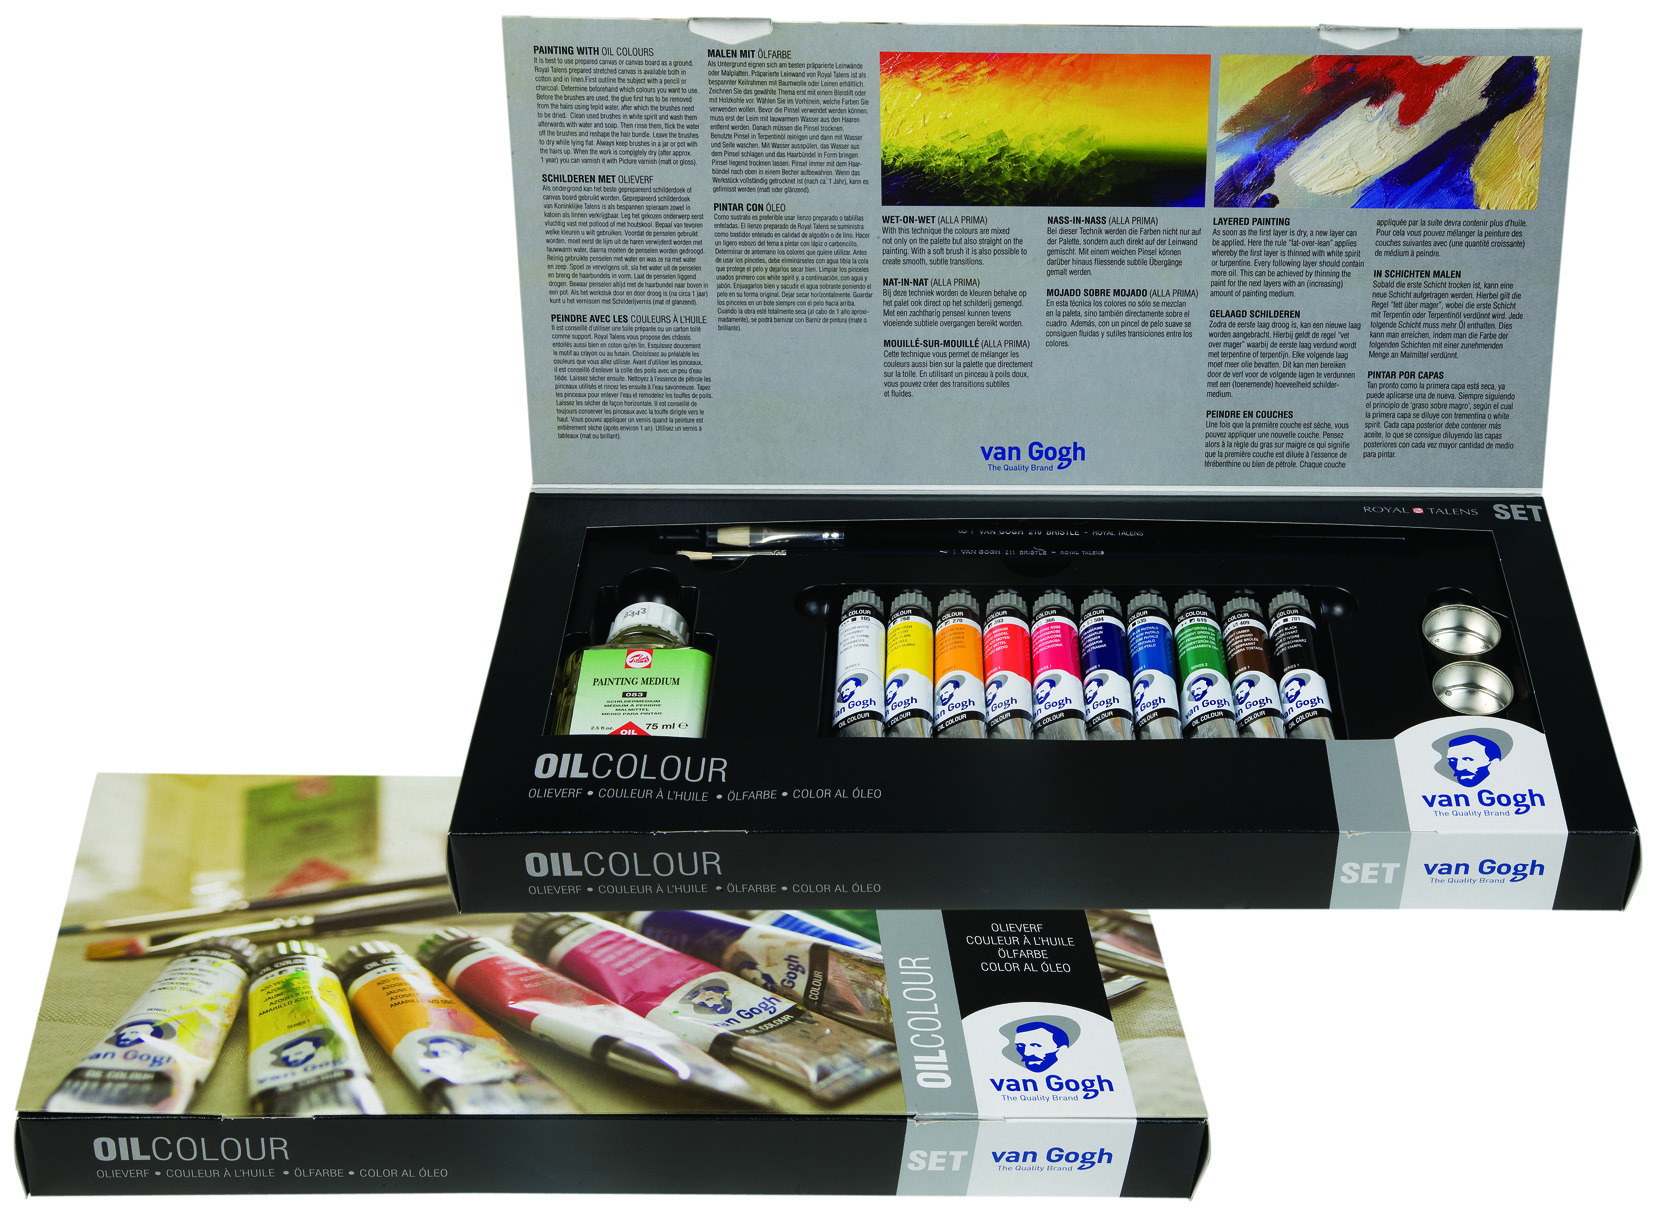 VAN GOGH OIL COMBI SET 10 x 20ml WITH ACCESSORIES